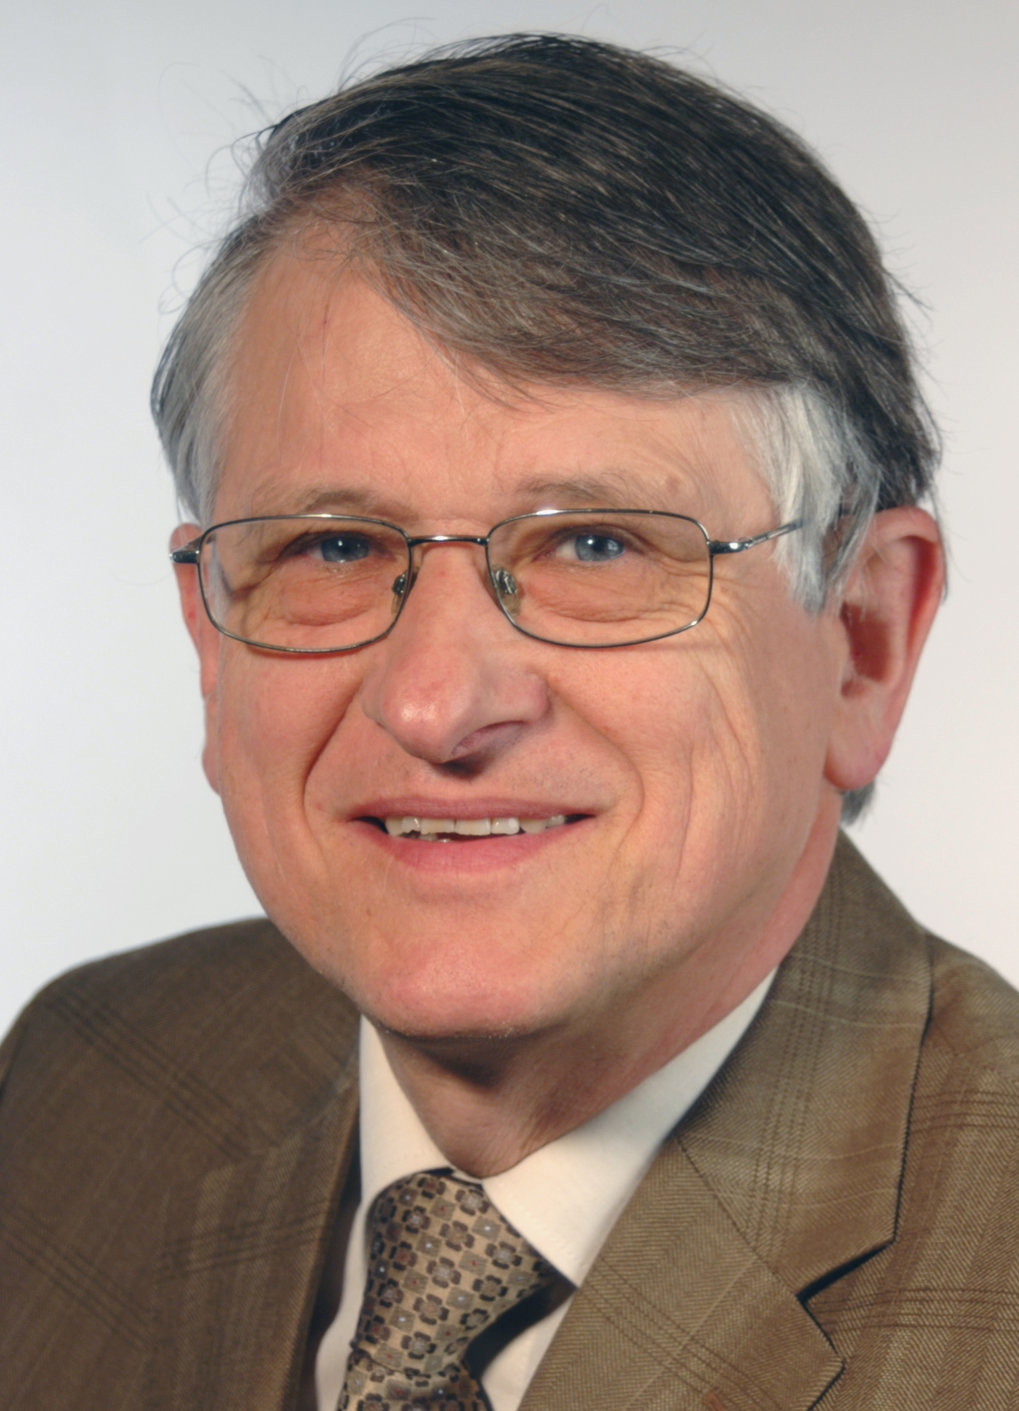 Der Nobelpreisträger Professor Klaus v. Klitzing erhält den Richard E. Prange Prize and Lectureship in Condensed Matter Theory and Related Areas 2014. (11.2014)